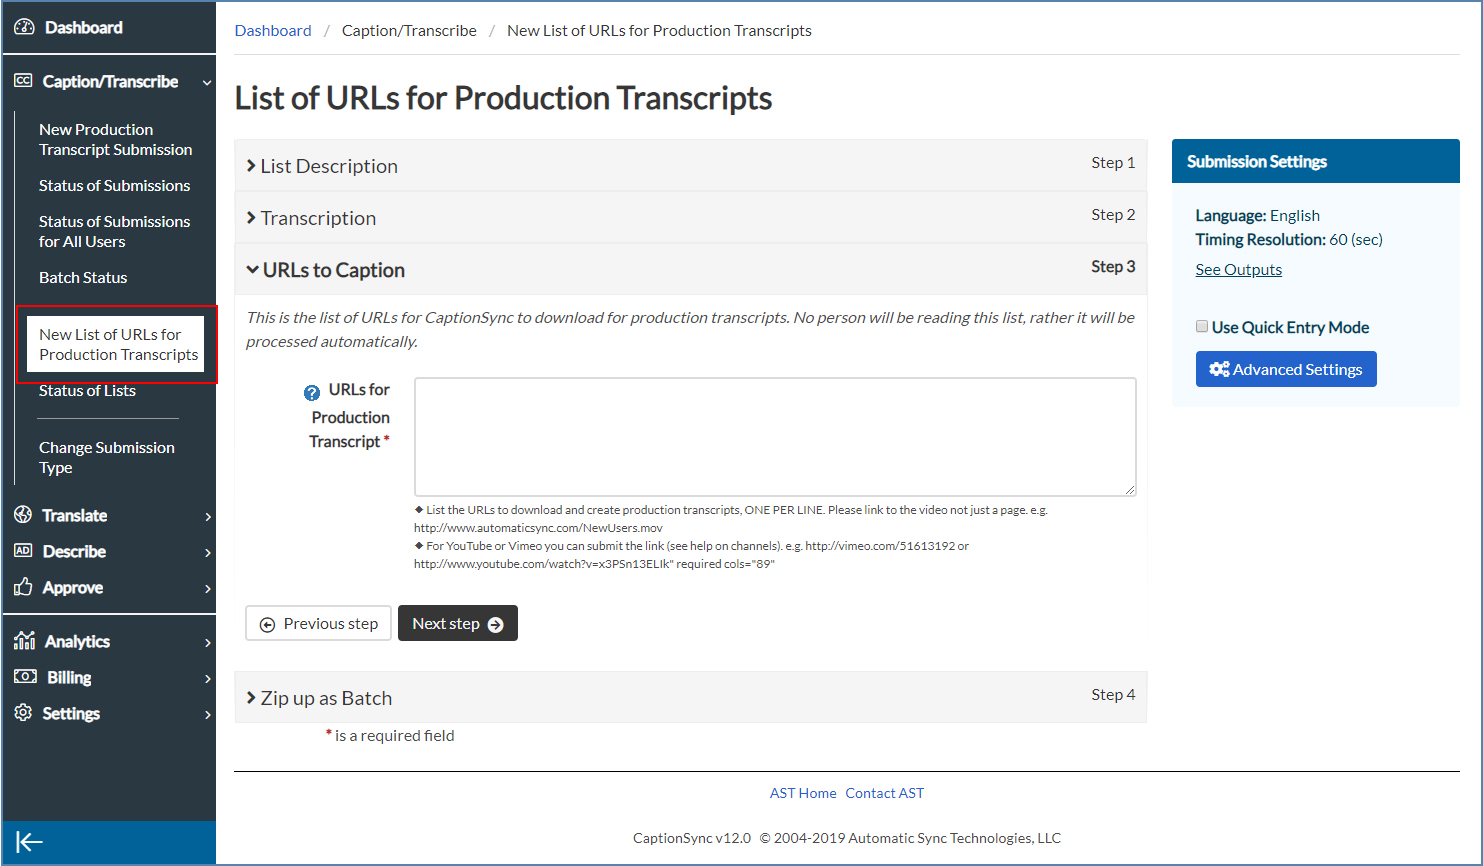 Image of the New List of URLs for Production Transcripts Only page